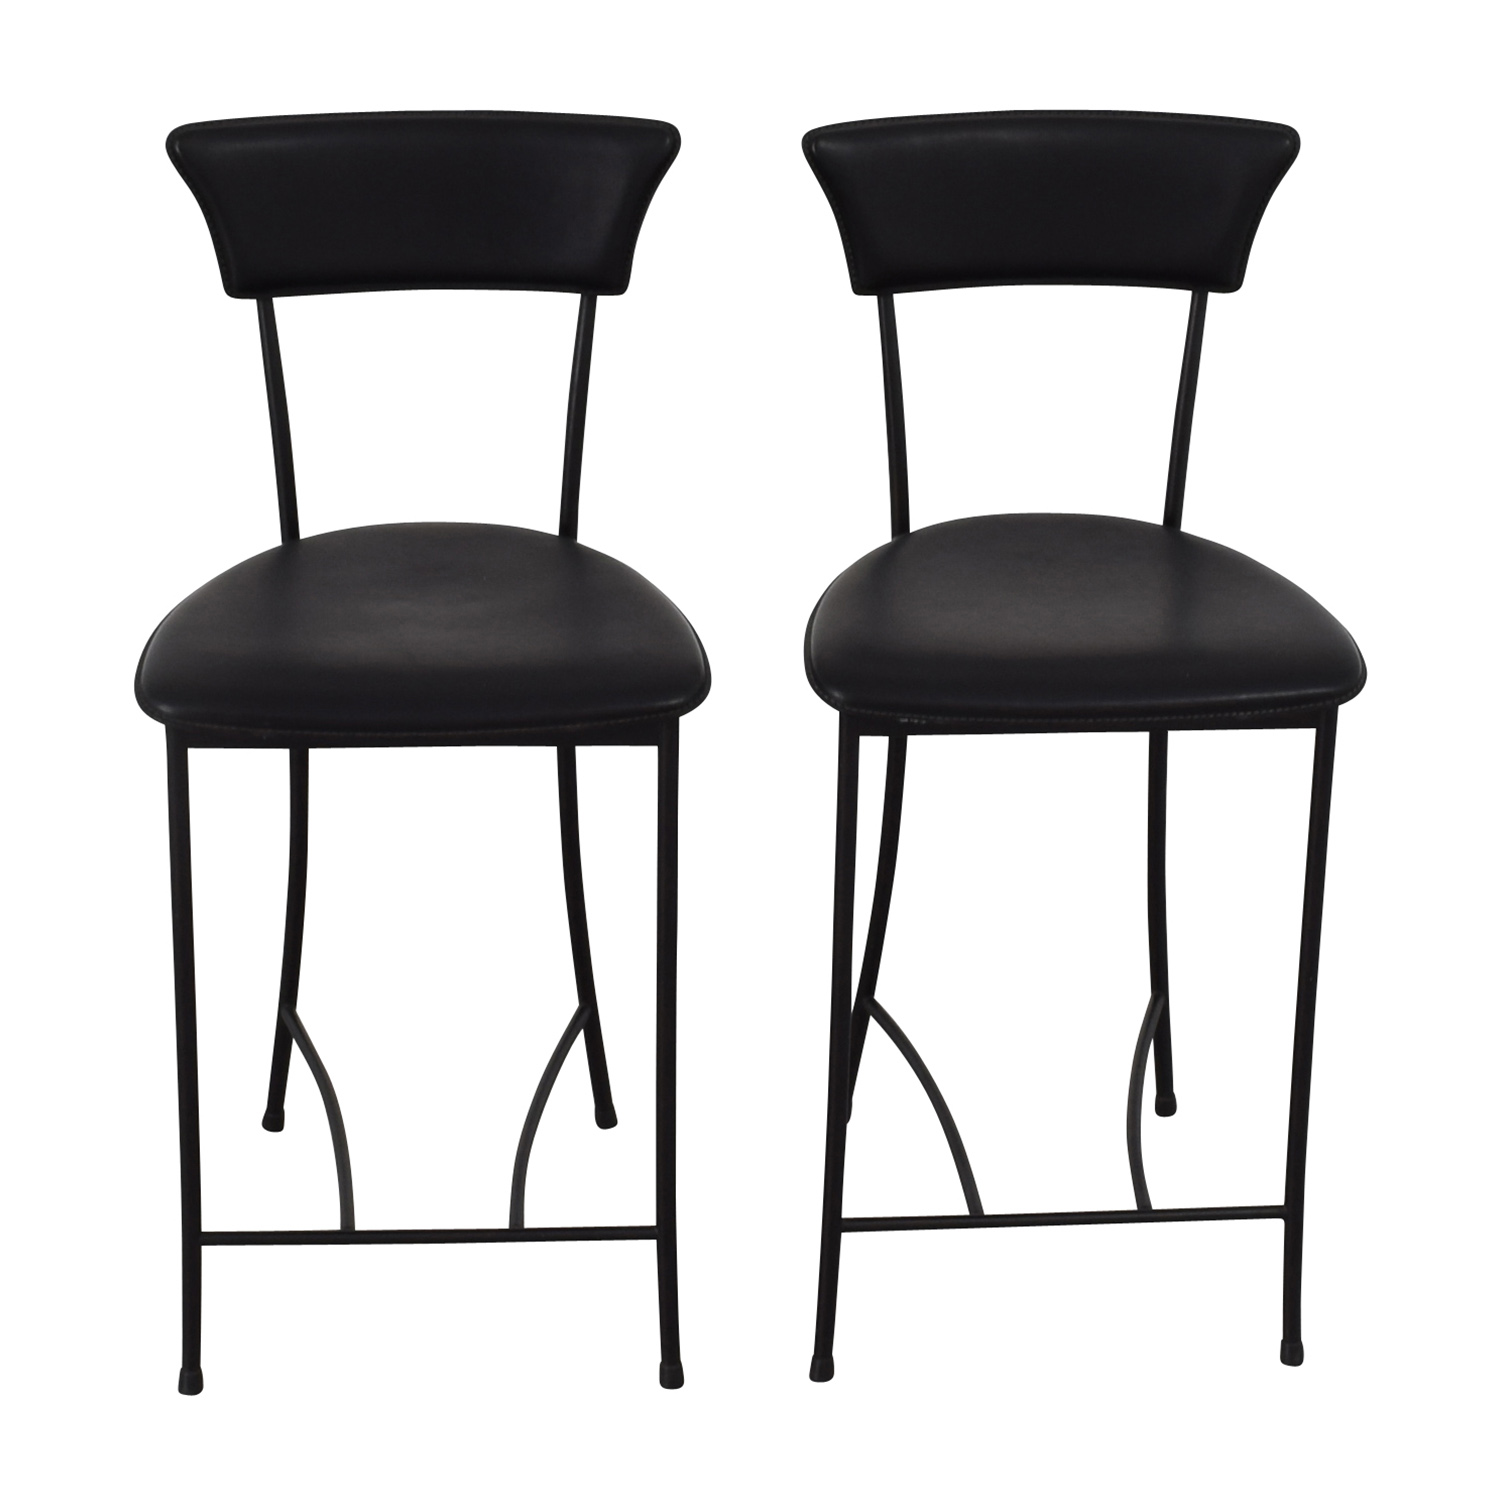 Black Leatherette Counter Height Chairs / Chairs